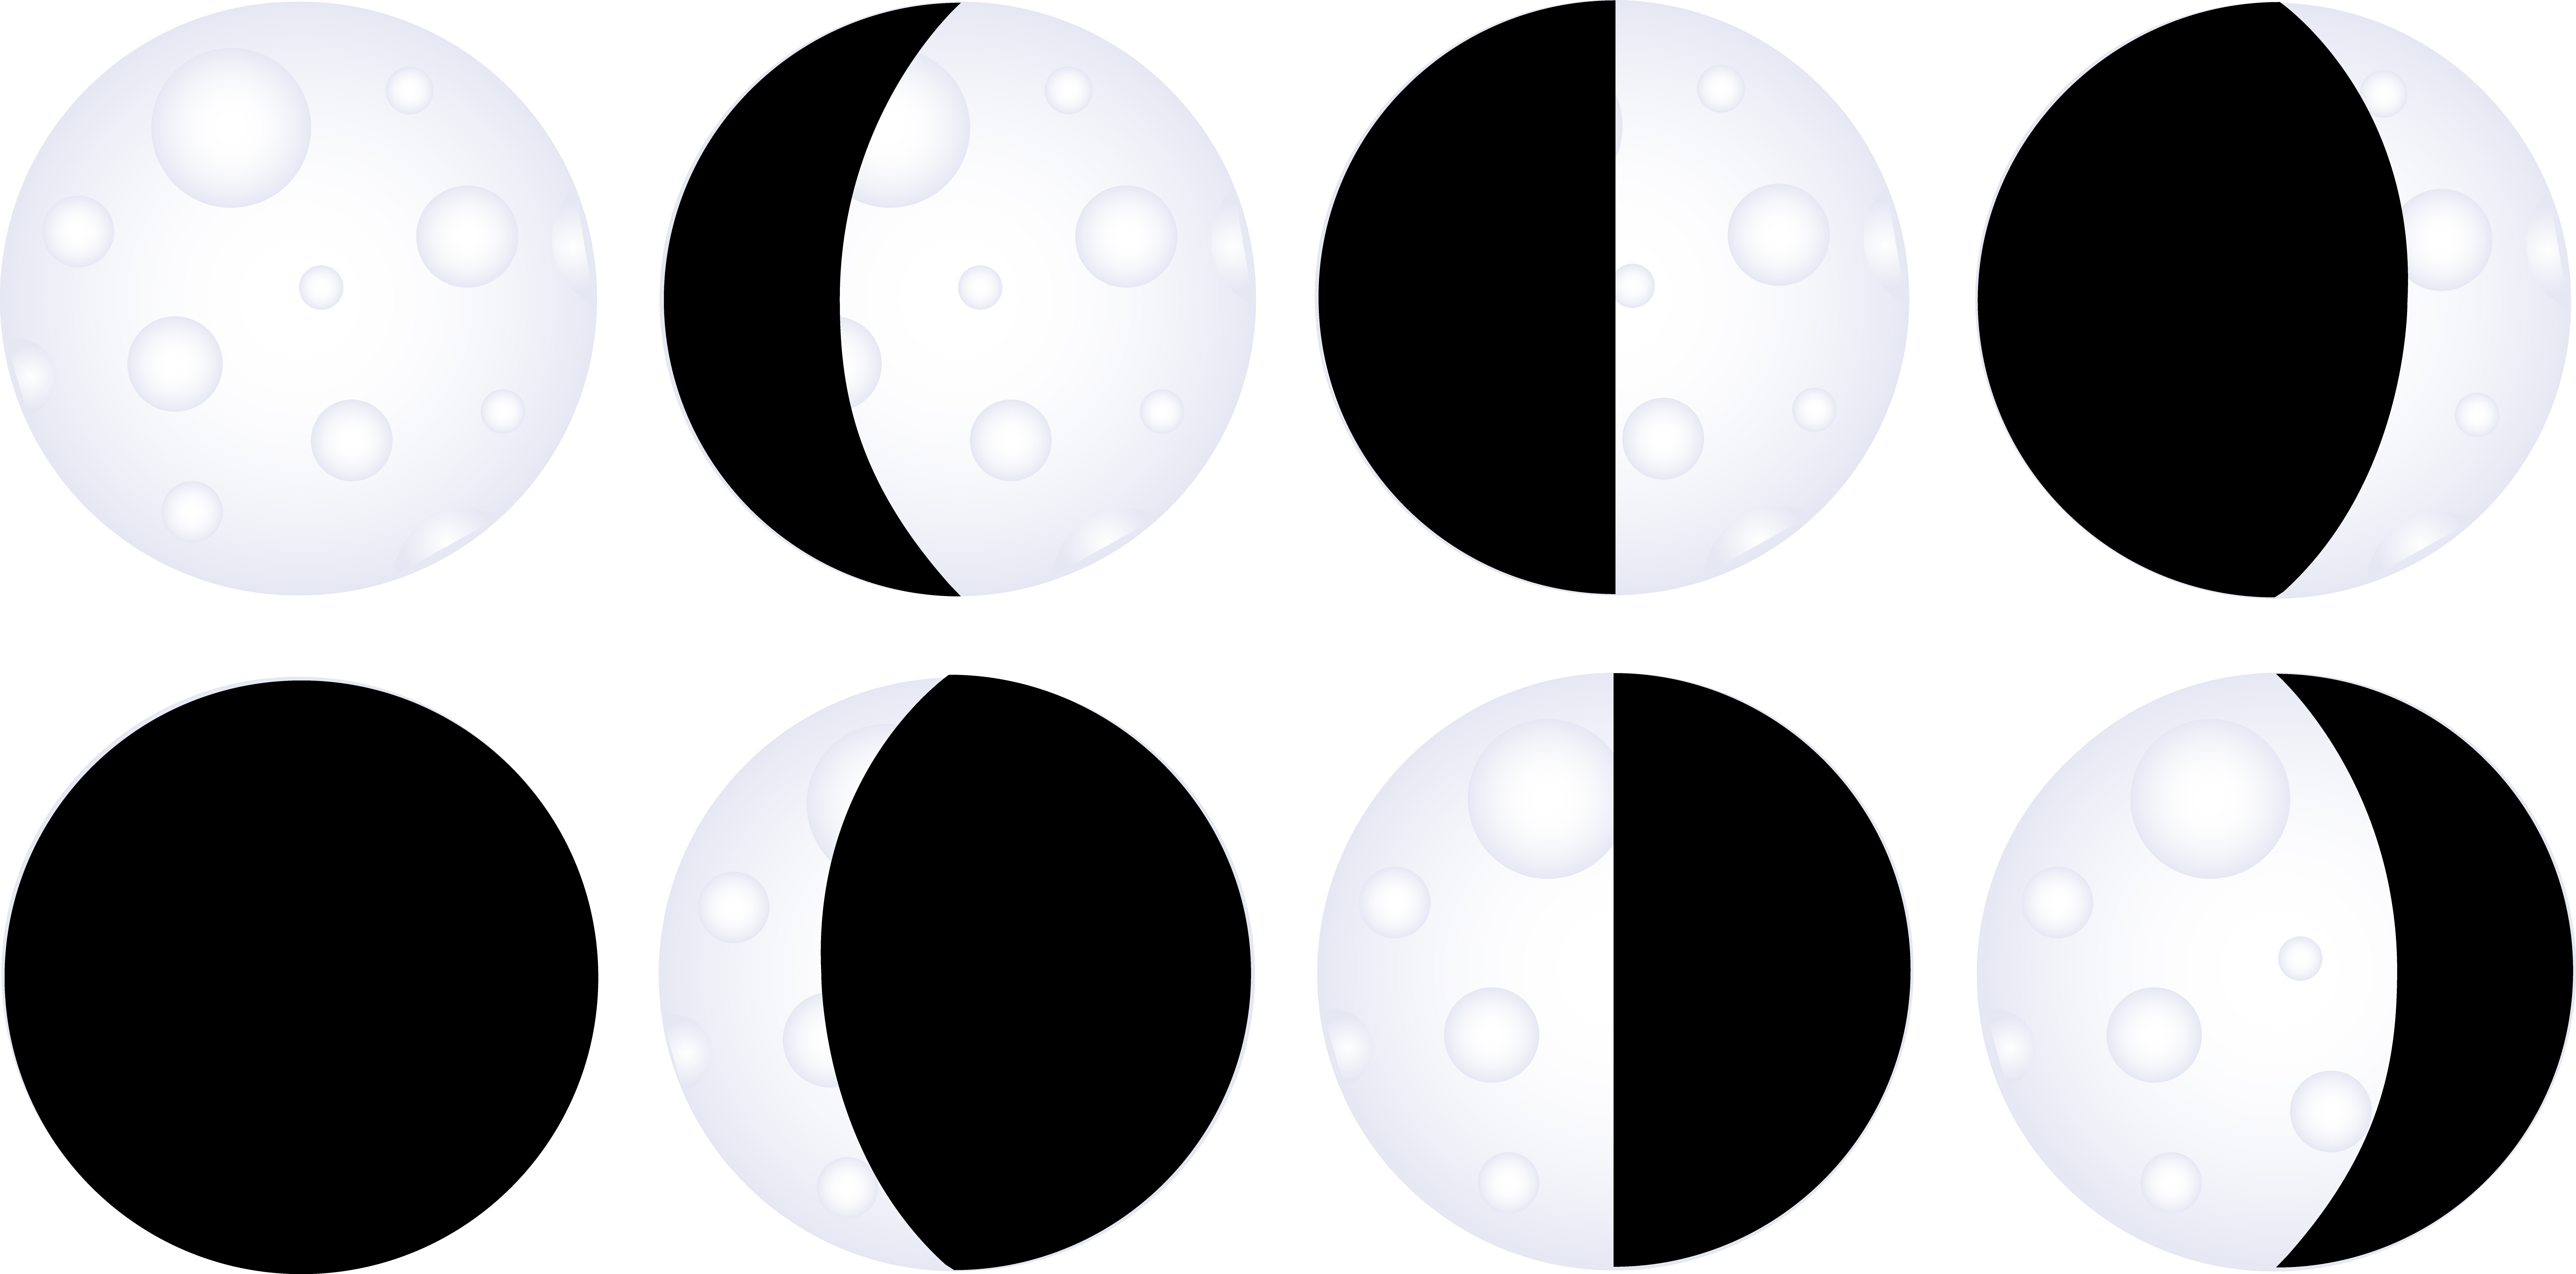 Full Moon Clipart Black And White | Clipart Panda - Free Clipart ...